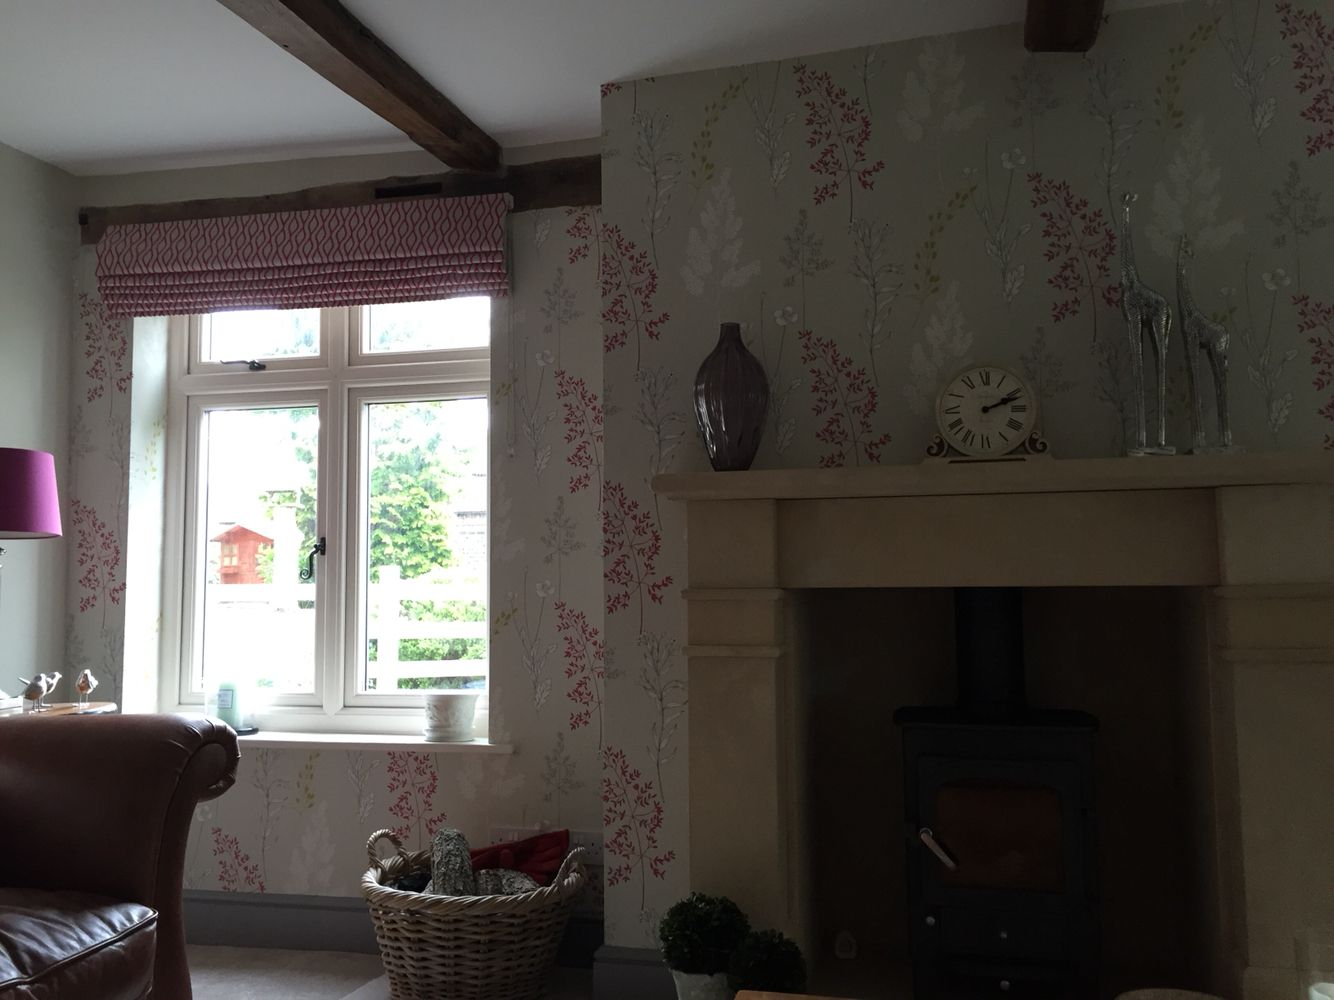 Roman blind made - completes the look!